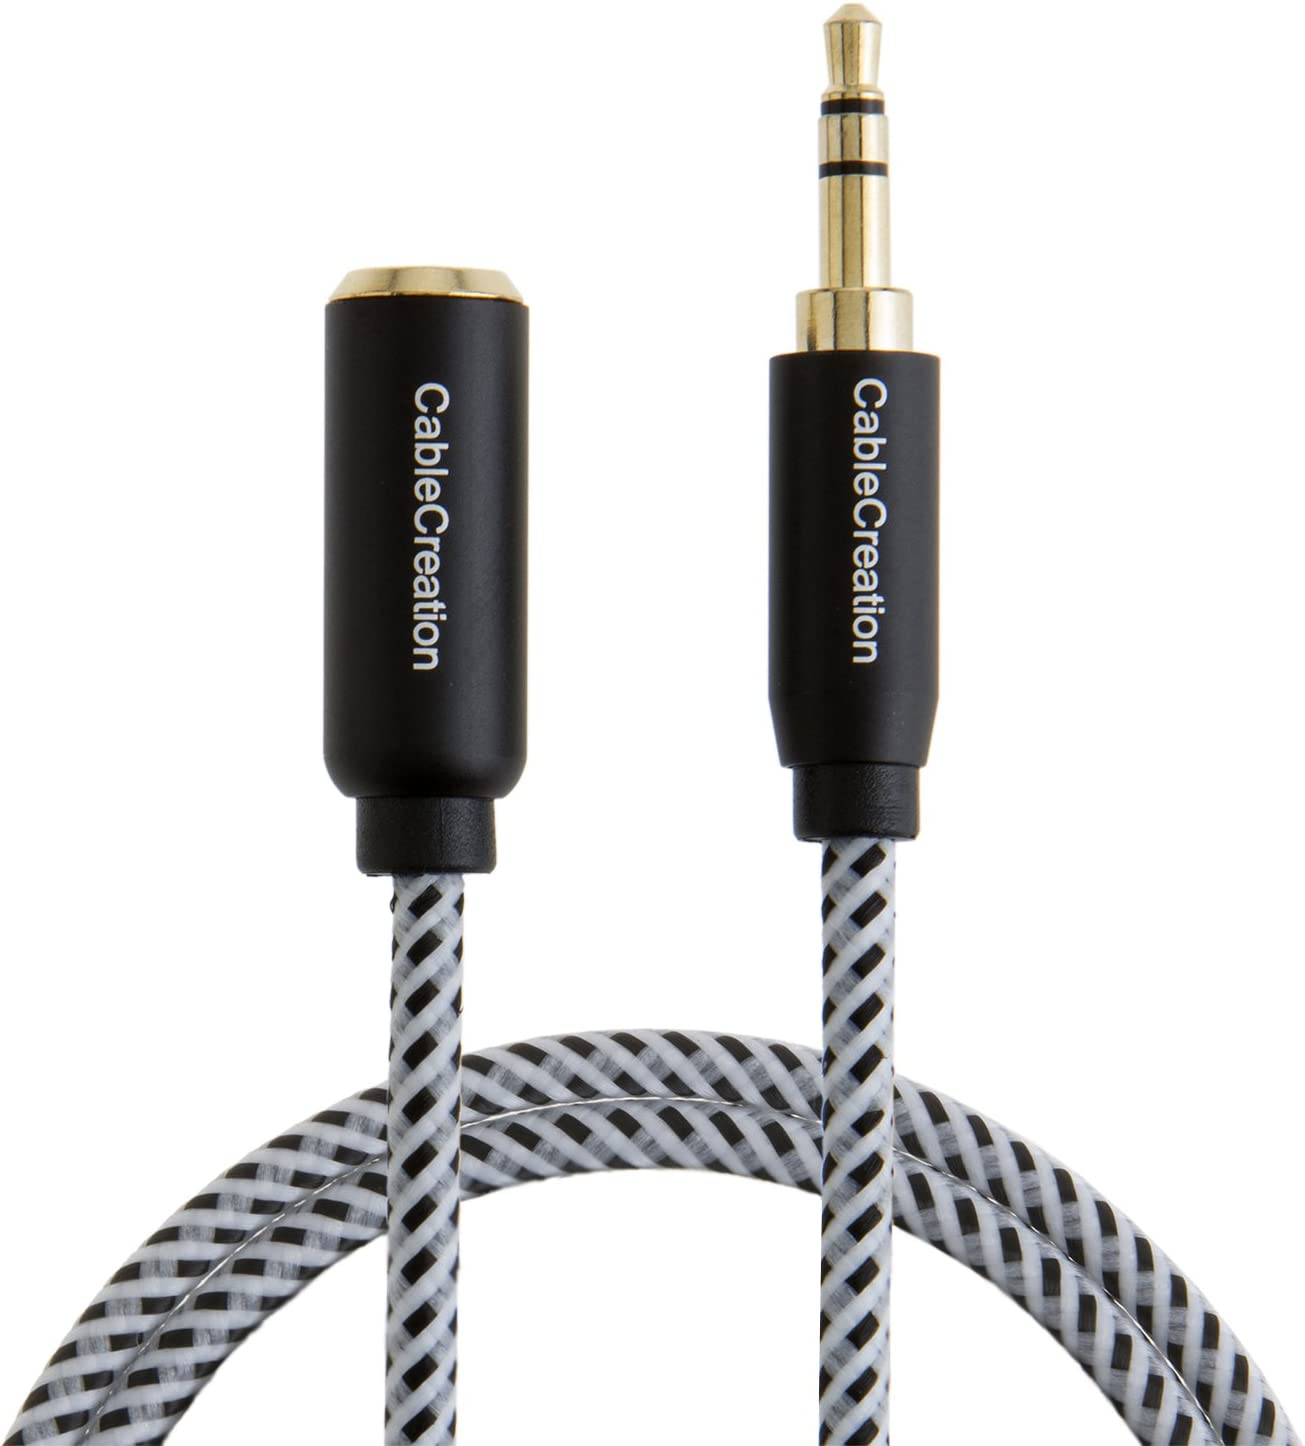 Compatible Smartphone//Tablet//Speaker,3.5mm Devices/& More Black /& White CableCreation 3.3 Feet 3.5mm Male to Female Extension Stereo Audio Extension Cable Adapter Gold Plated Aux Extension Cable